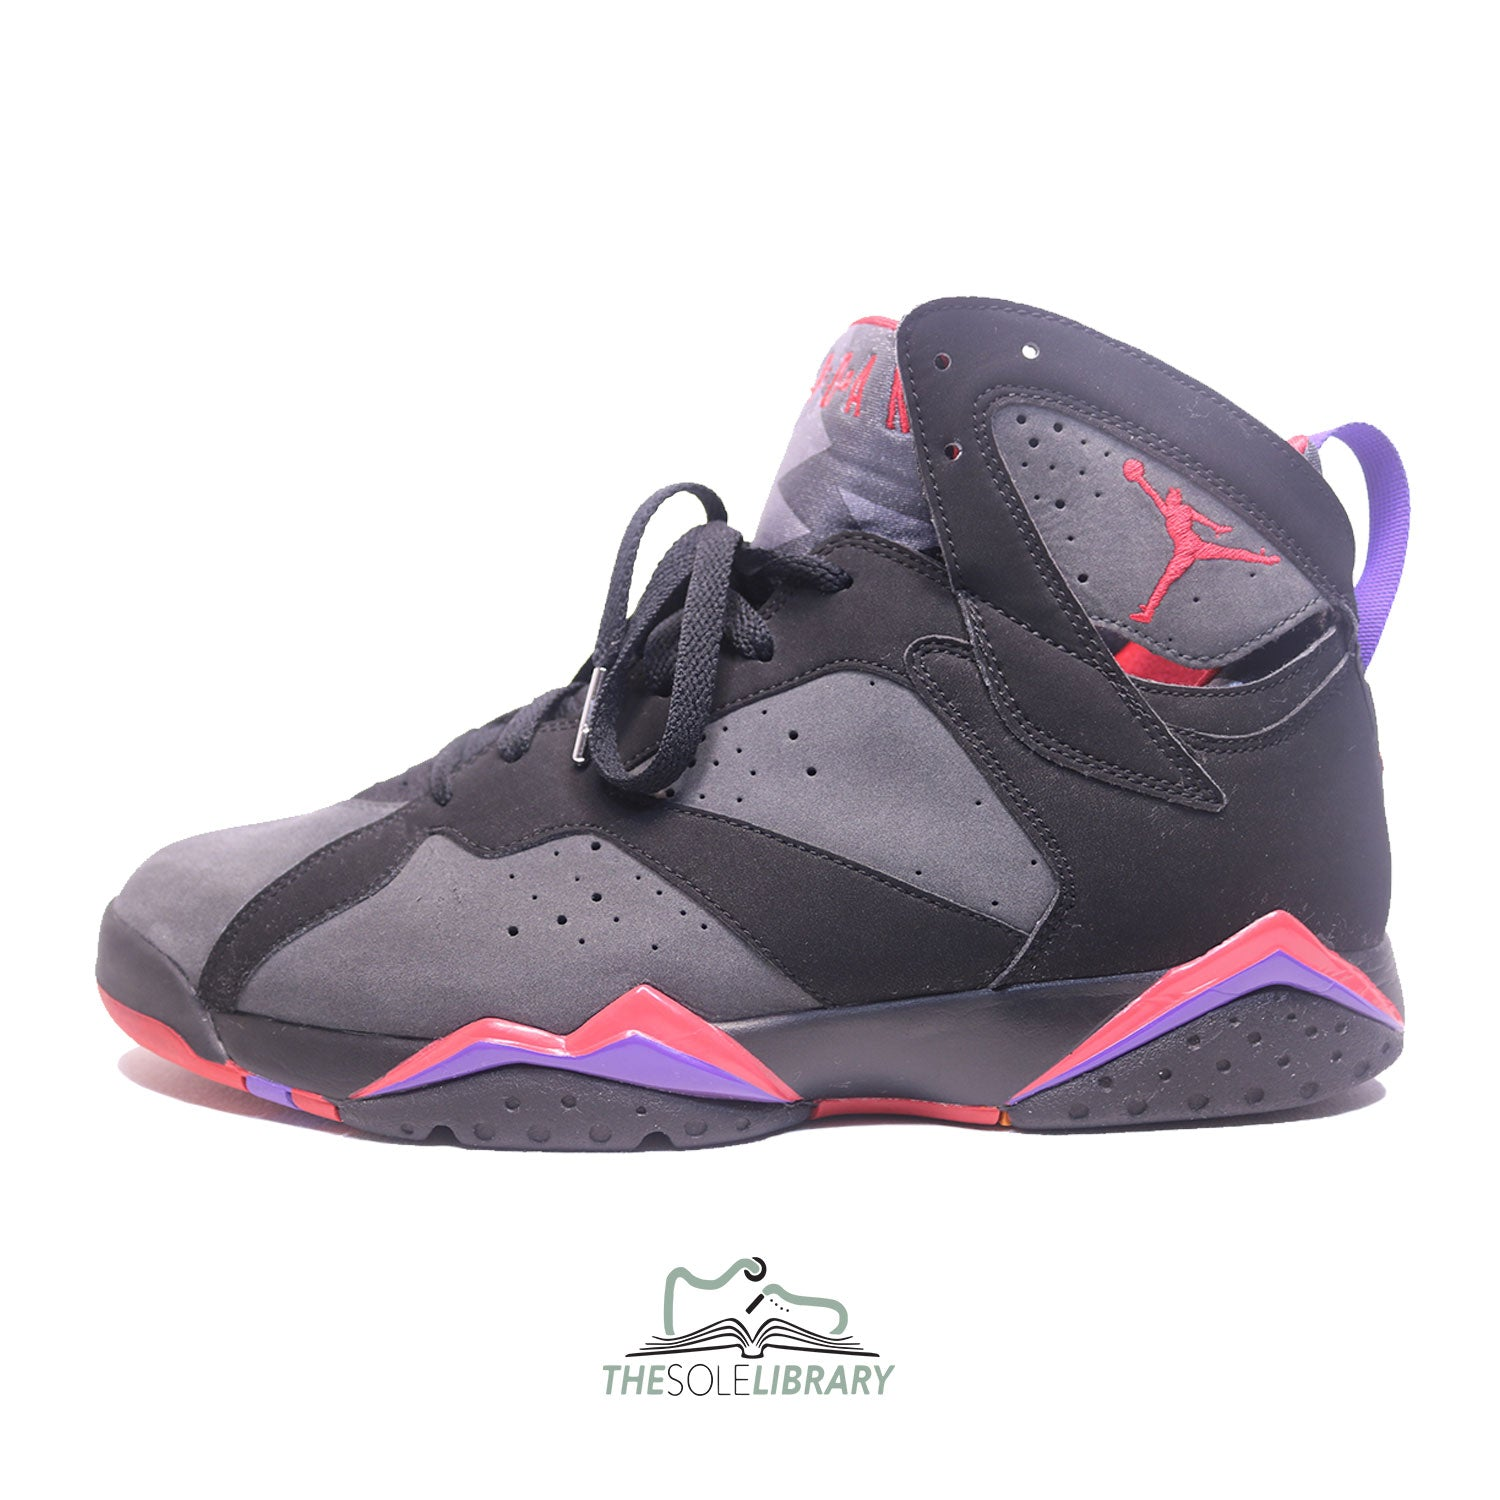 new product 25e5f f12df Jordan 7 Raptor DMP For Sale - The Sole Library